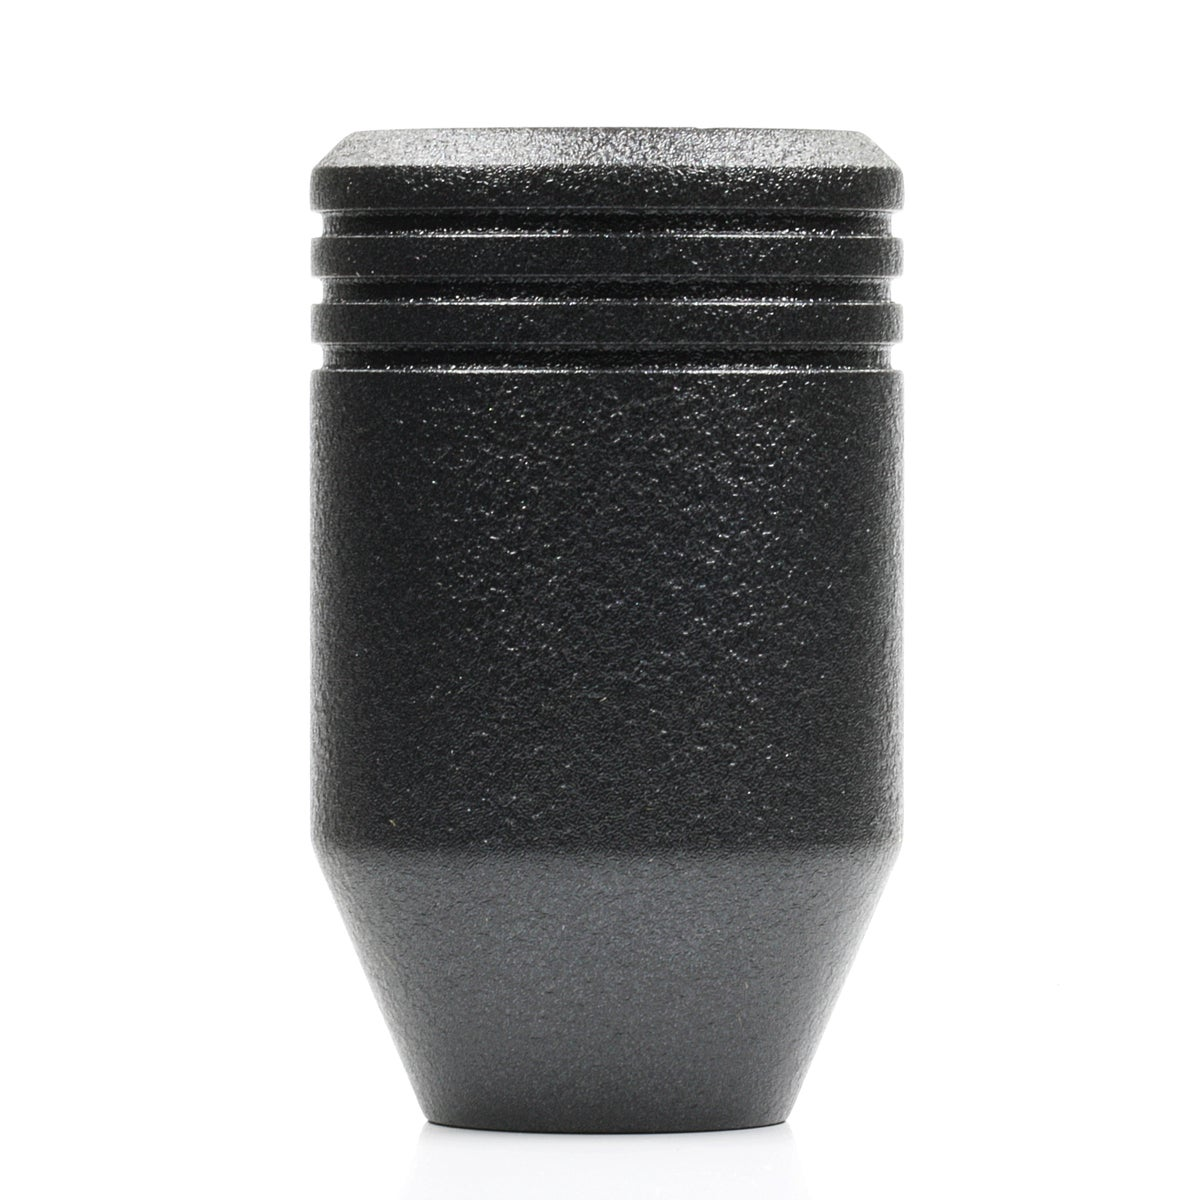 Image of PS [750 Grams] Shift Knob